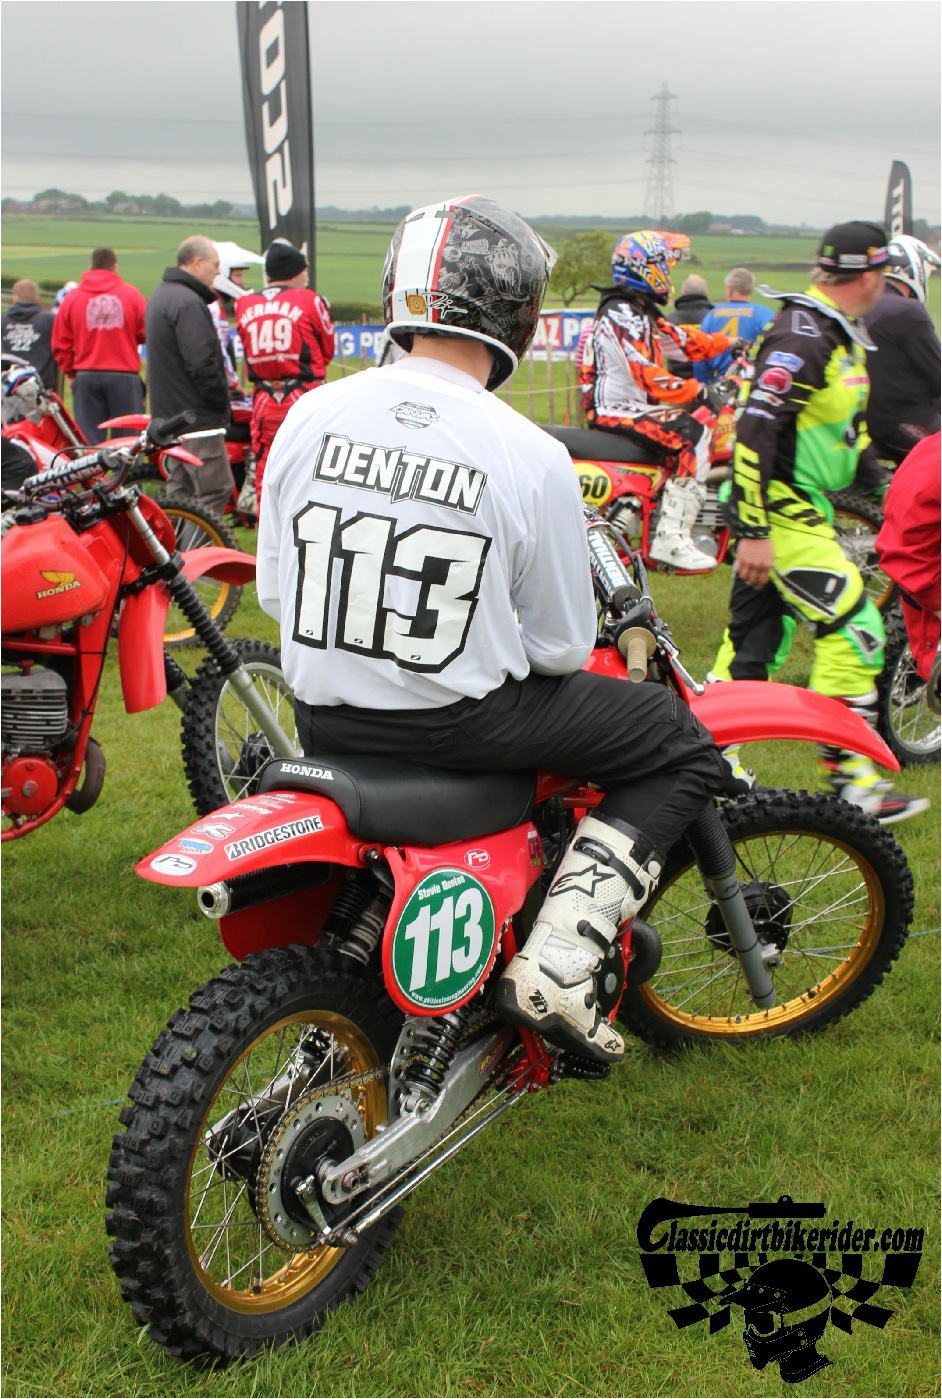 classicdirtbikerider.com-national-twinshock-championship-2015-Garstang-riders get ready for practice 6